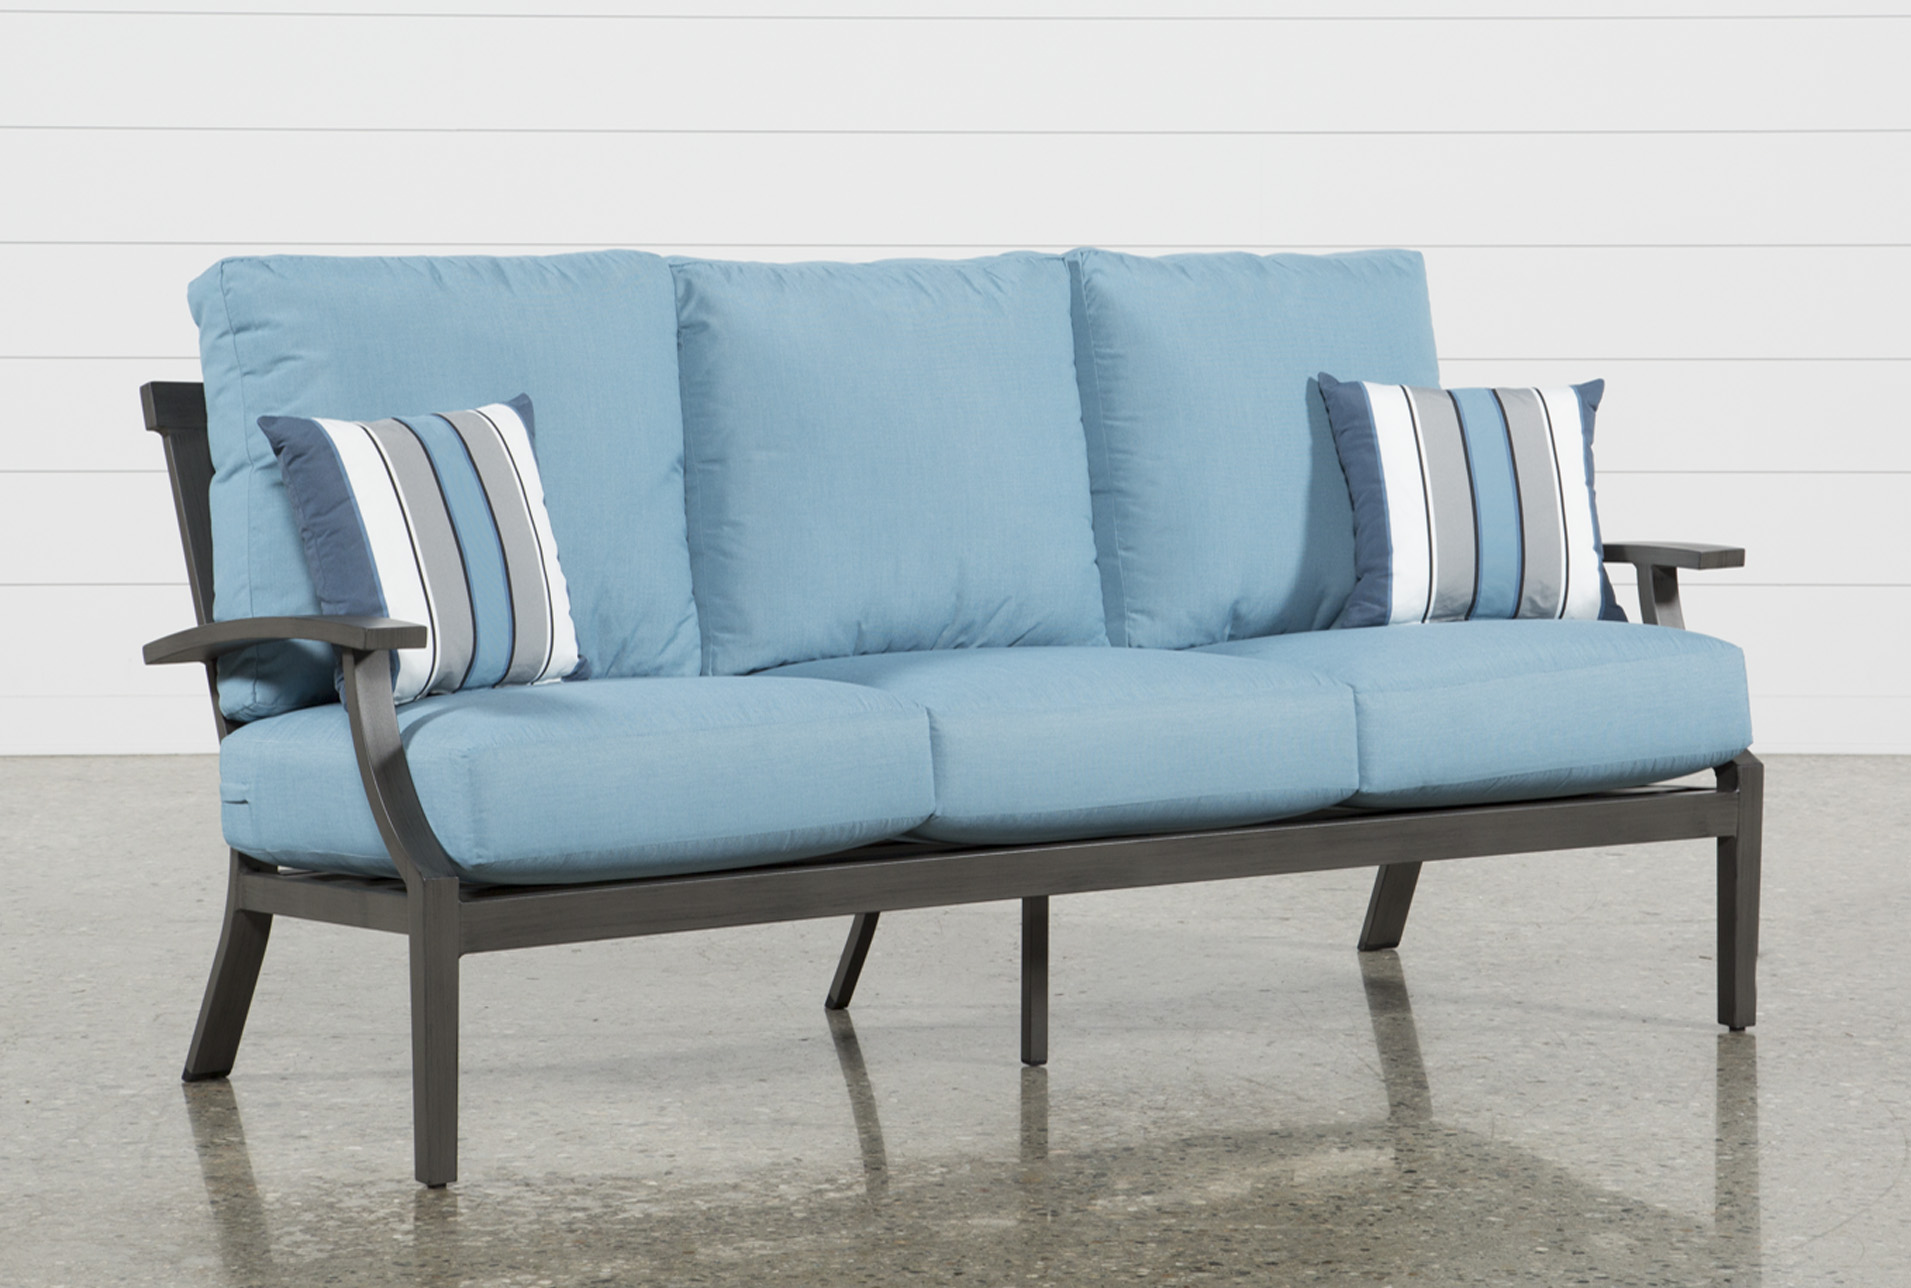 Etonnant Outdoor Martinique II Aqua Sofa